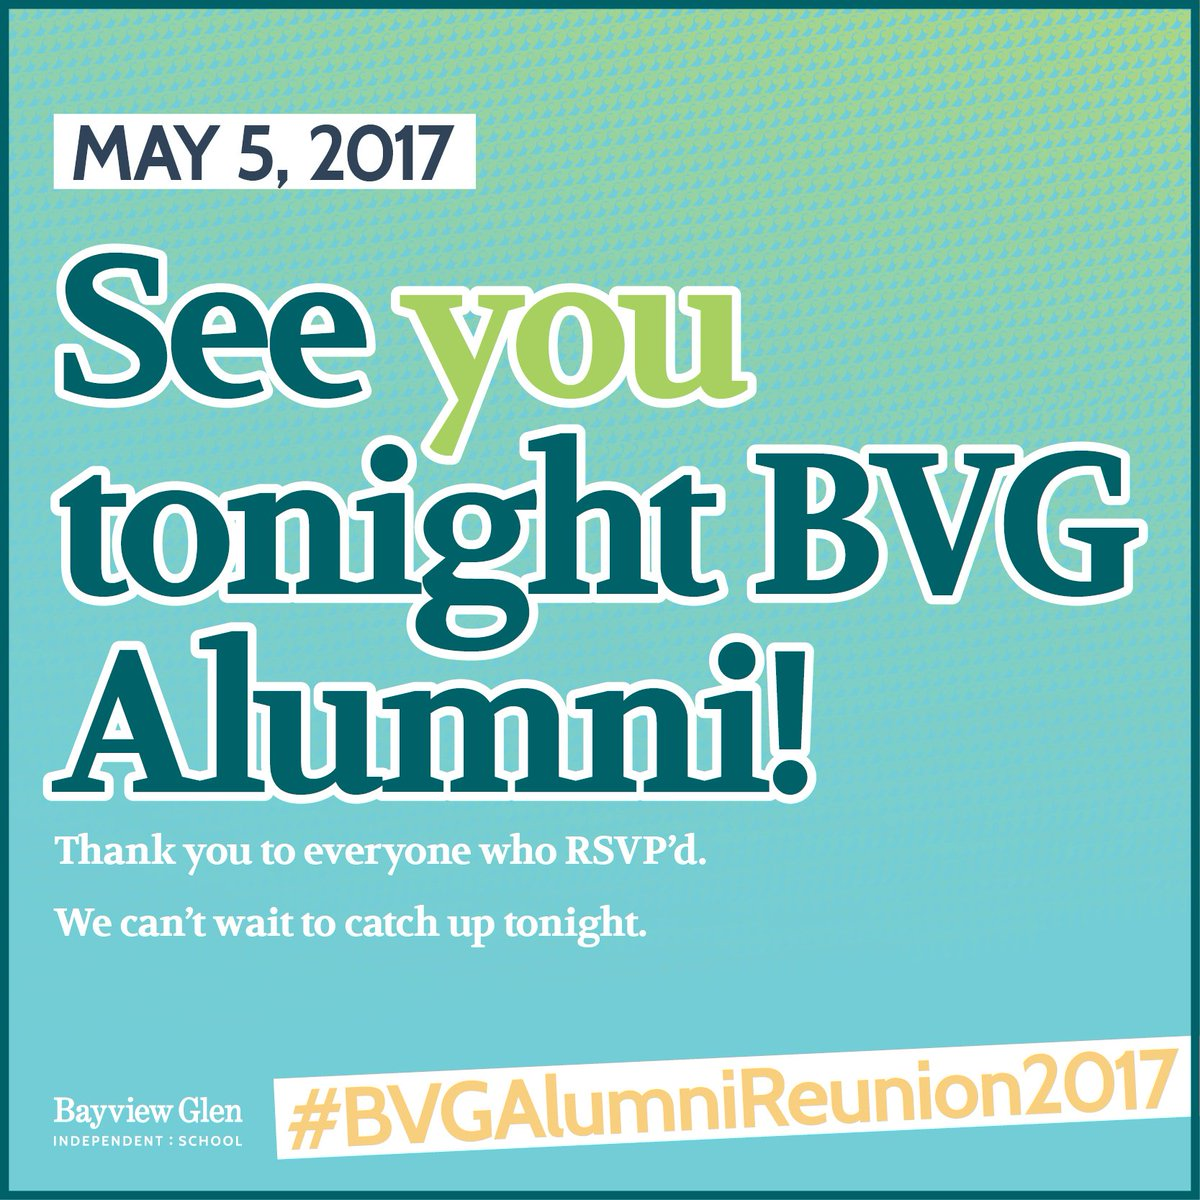 Medication discount coupons bvgg -  Bvgalumni See You All At Bvgalumnireunion2017 Tonight May 5 And Tomorrow May 6 Rain Or Shine Http Www Bayviewglen Ca Alumni Events Pic Twitter Com